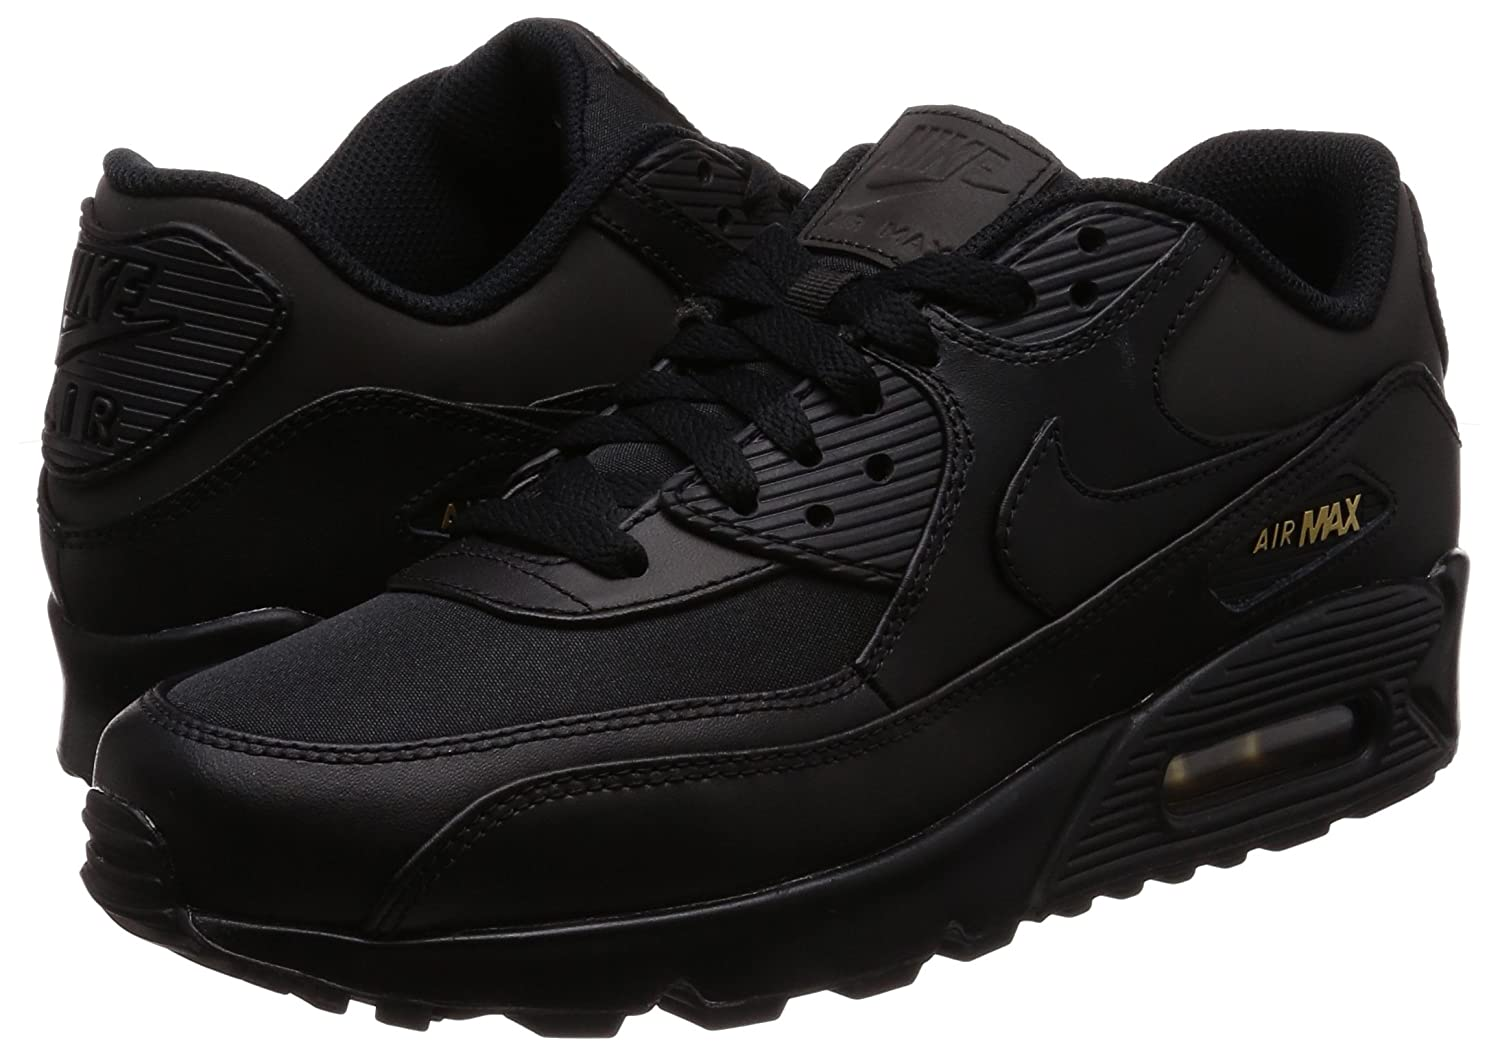 Nike Air Max 90 Premium Mens Running Trainers 700155 Sneakers Shoes